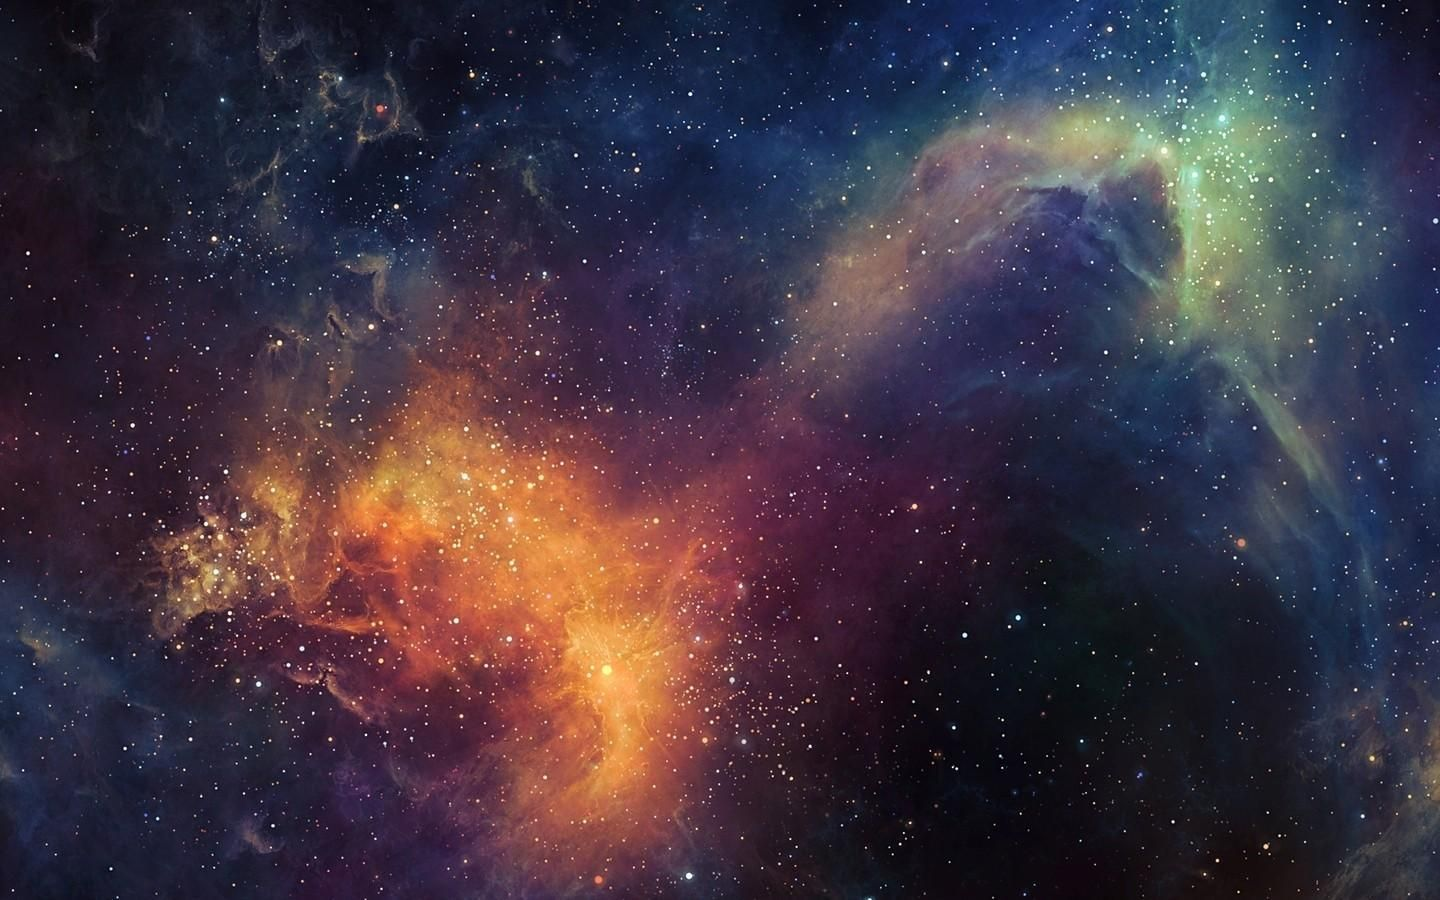 Abstract Space Wallpaper Wide DzT